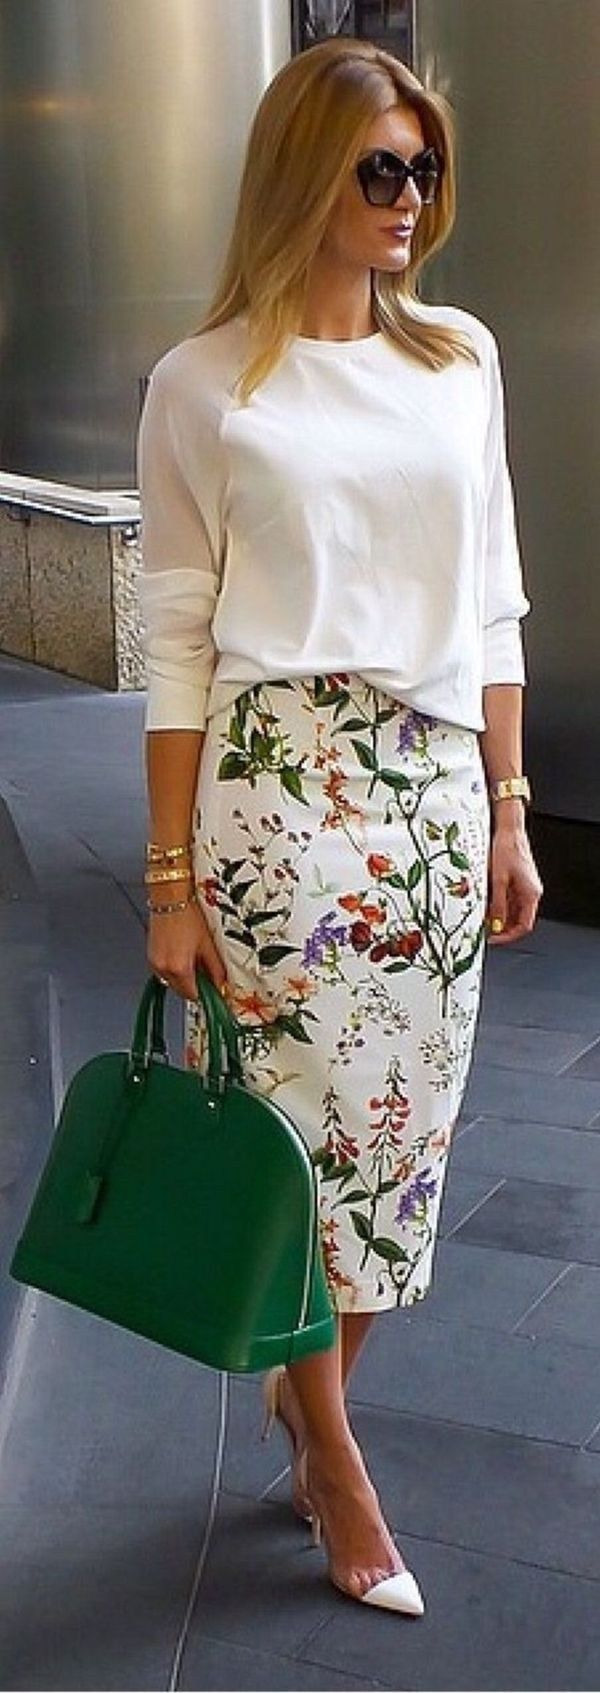 53 Stunning Business Work Casual Outfits Ideas For Ladies